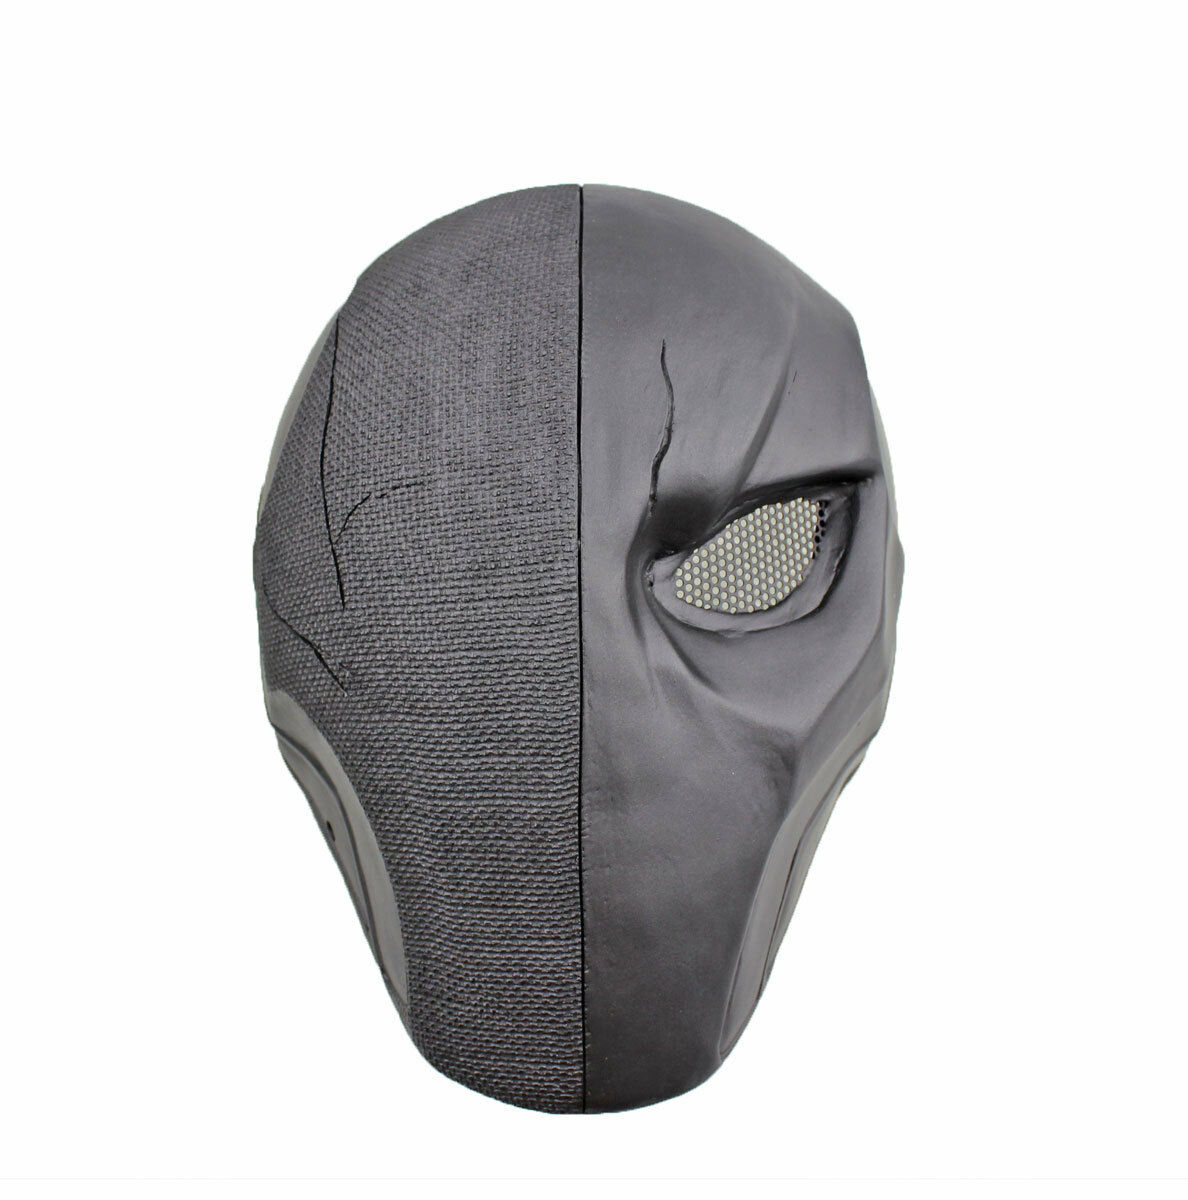 Single Eye Mask Paintball Airsoft Full Face Prossoection Prop Halloween M0895